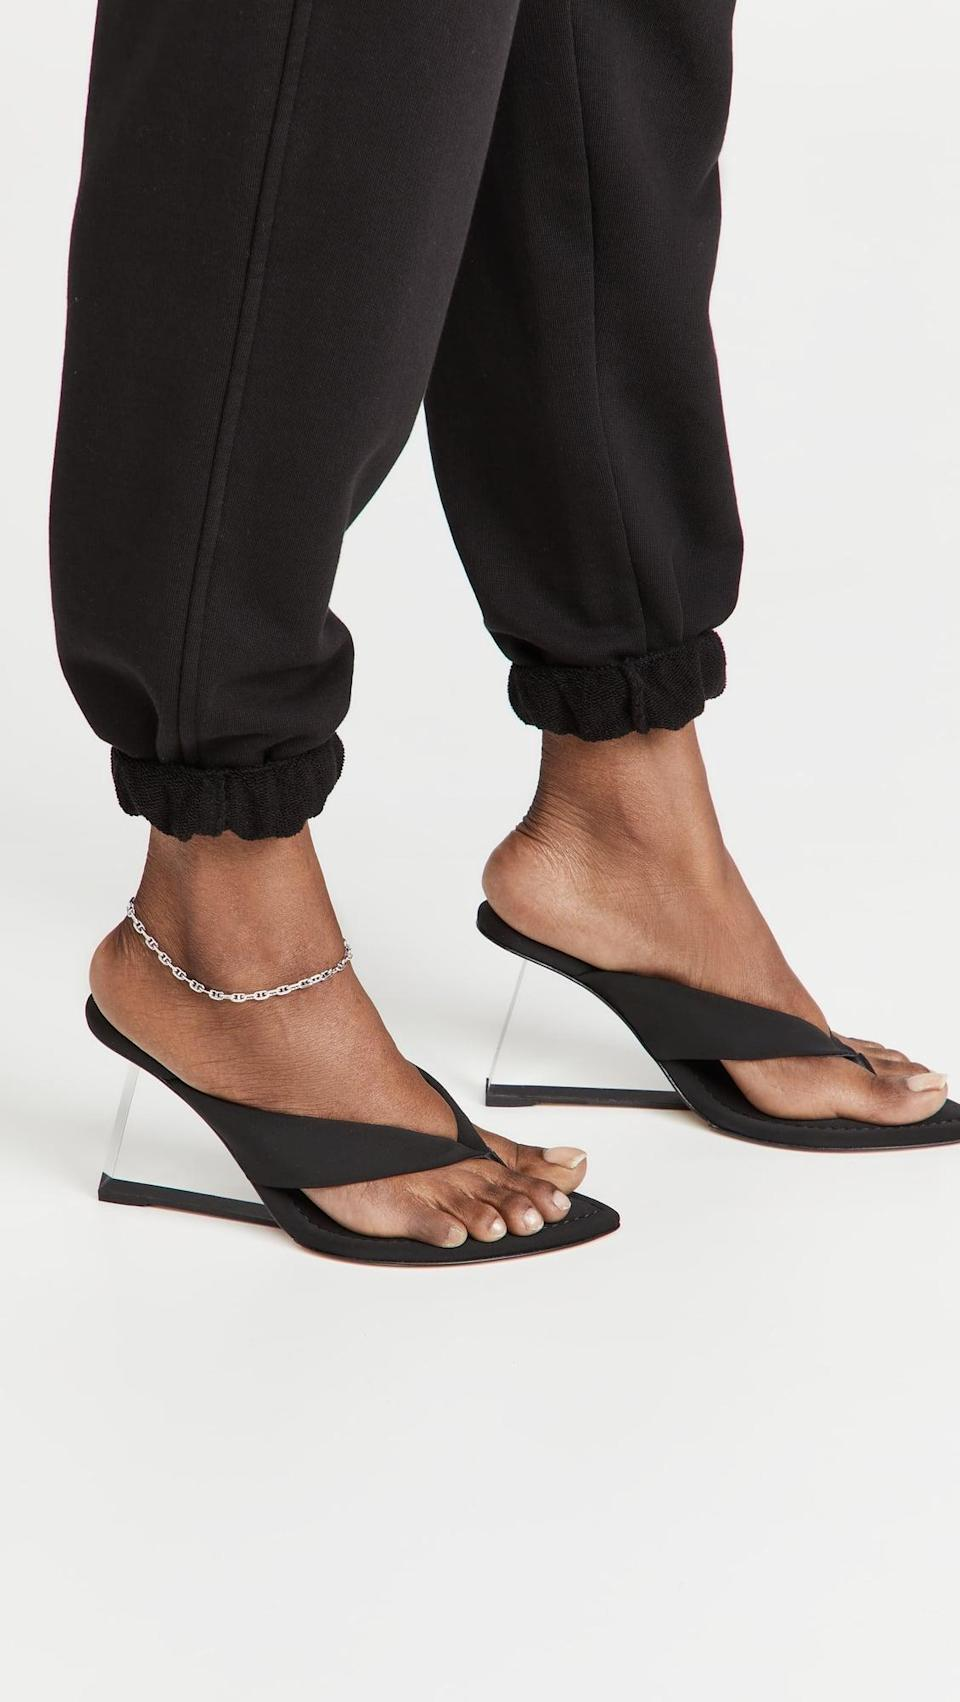 <p>The other kind of shoe that's making a comeback? Wedges. These <span>Good American Clear Block Heel Thong Sandals</span> ($195) are highly coveted thanks to their invisible wedge, which is both more comfortable and gives a very cool silhouette.</p>